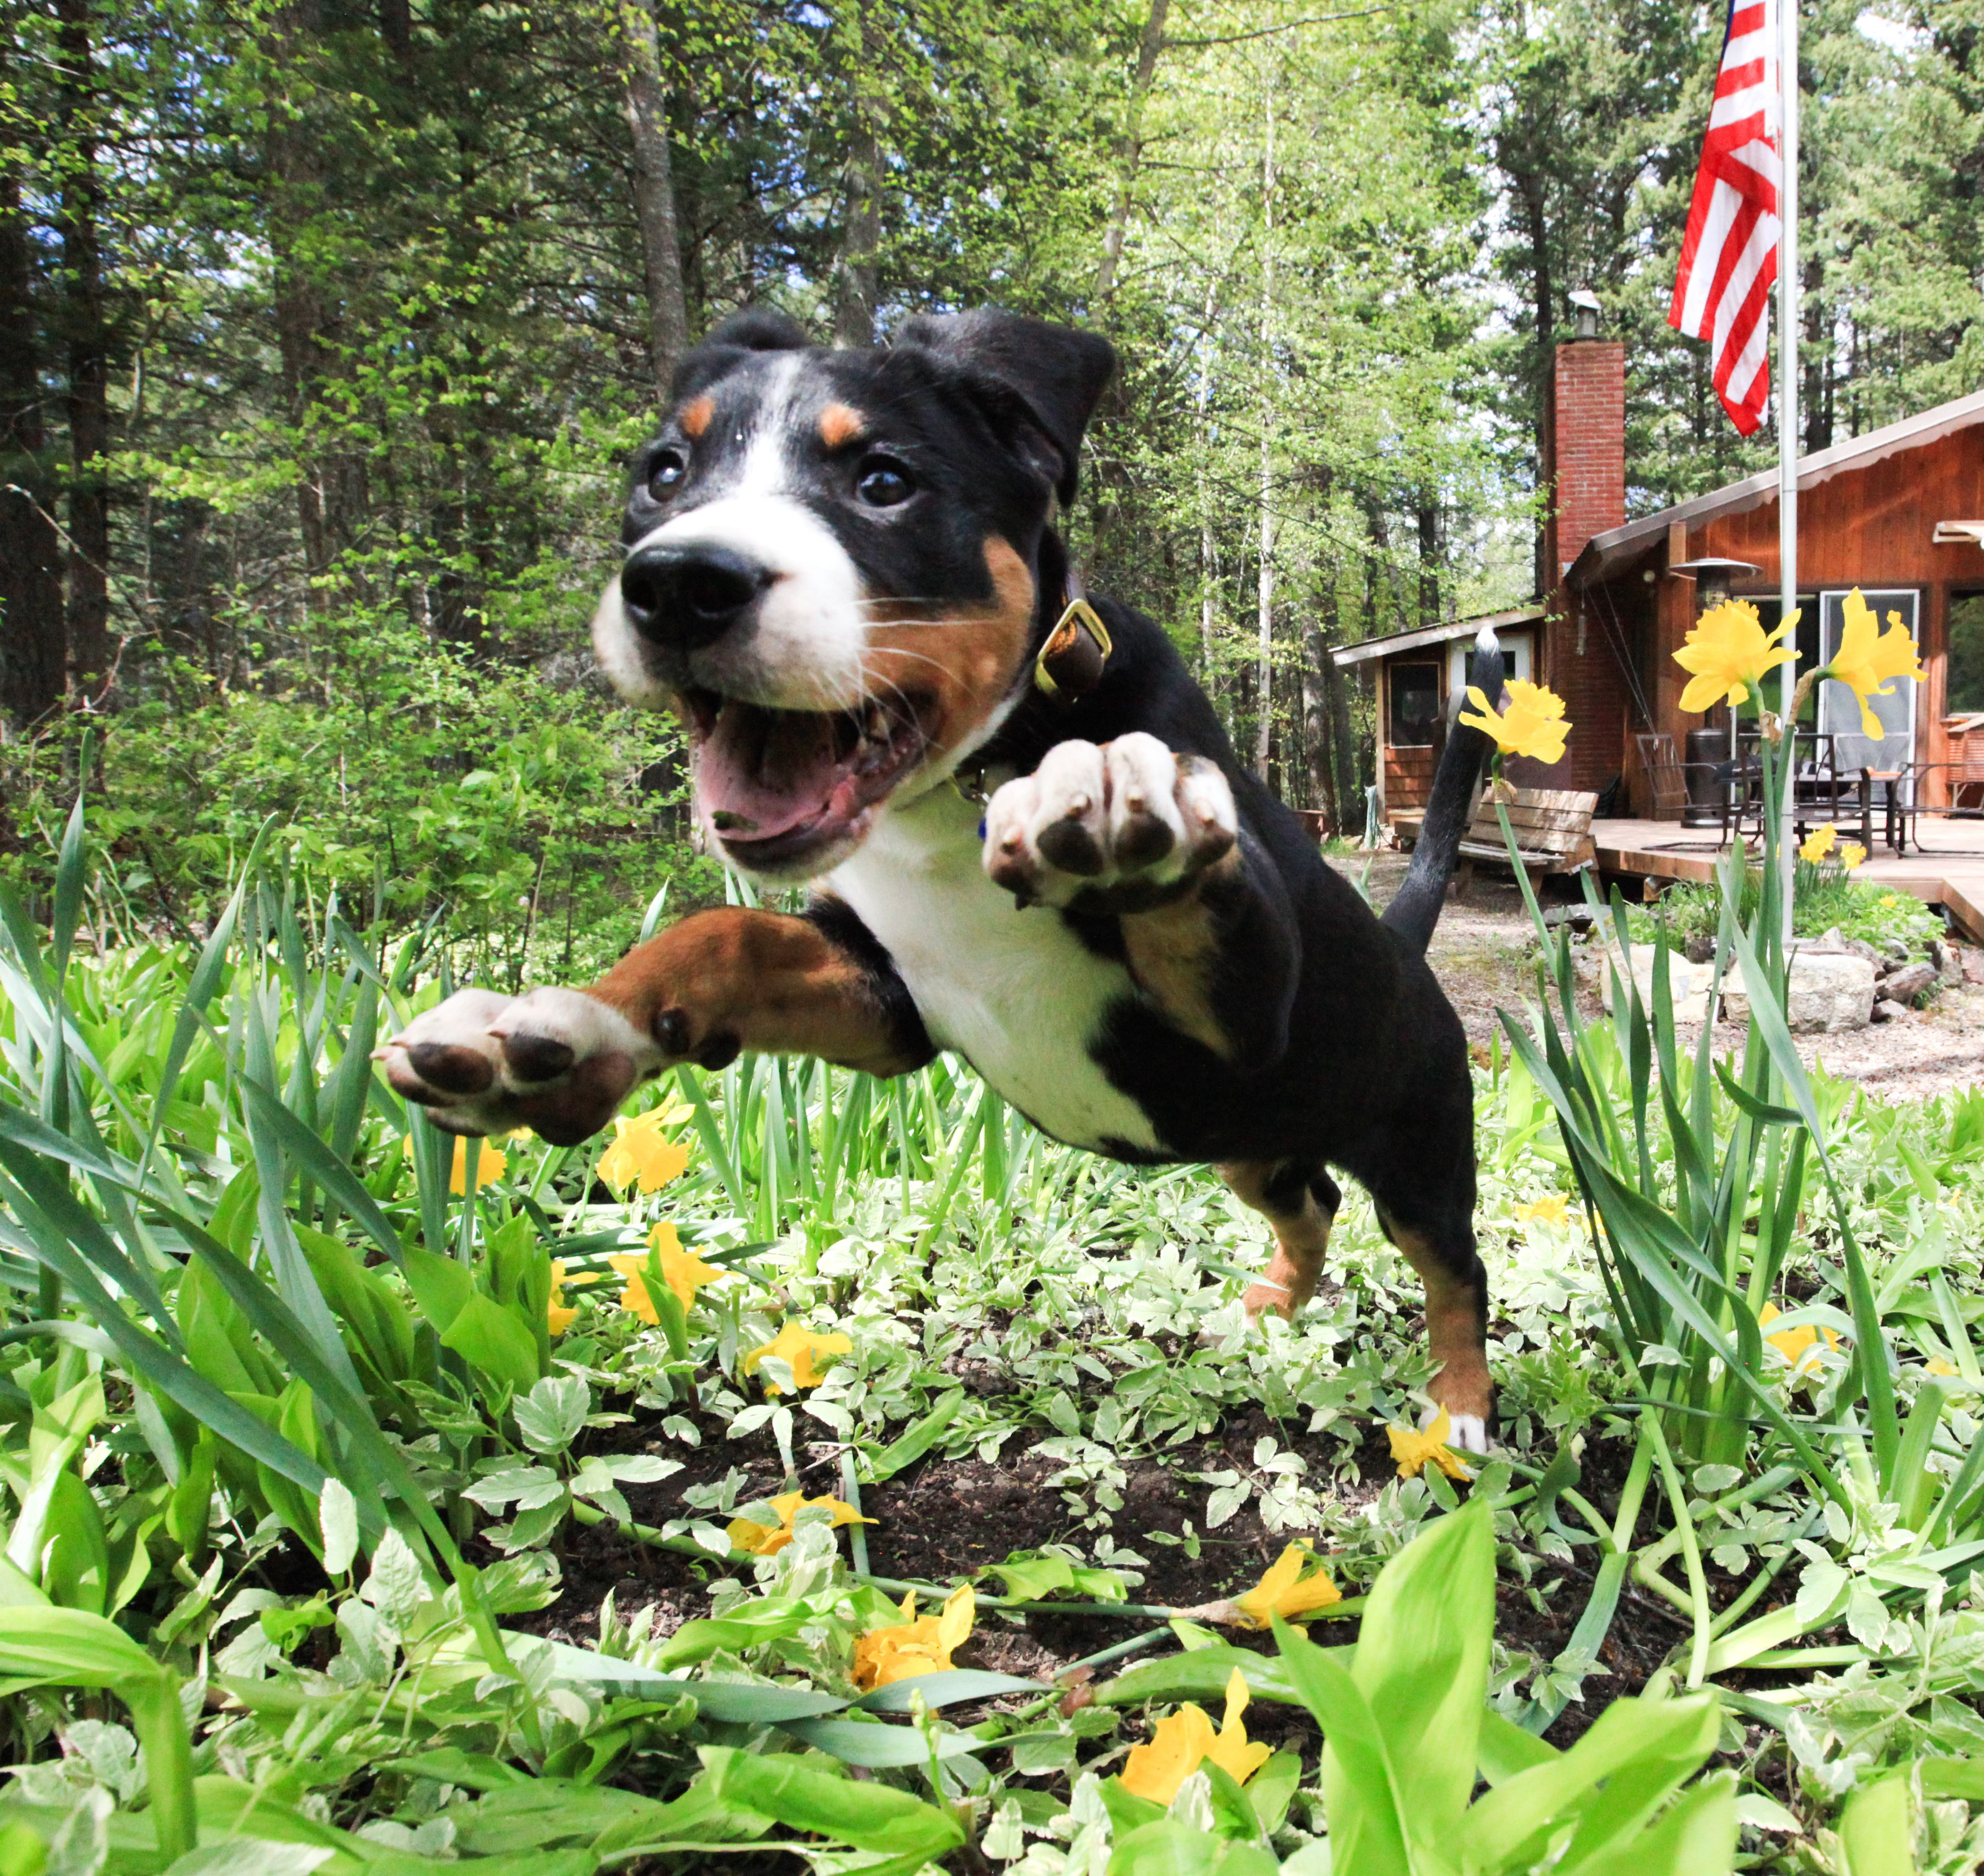 8 Backyard Ideas To Delight Your Dog: Keep Dogs Out Of Flower Gardens